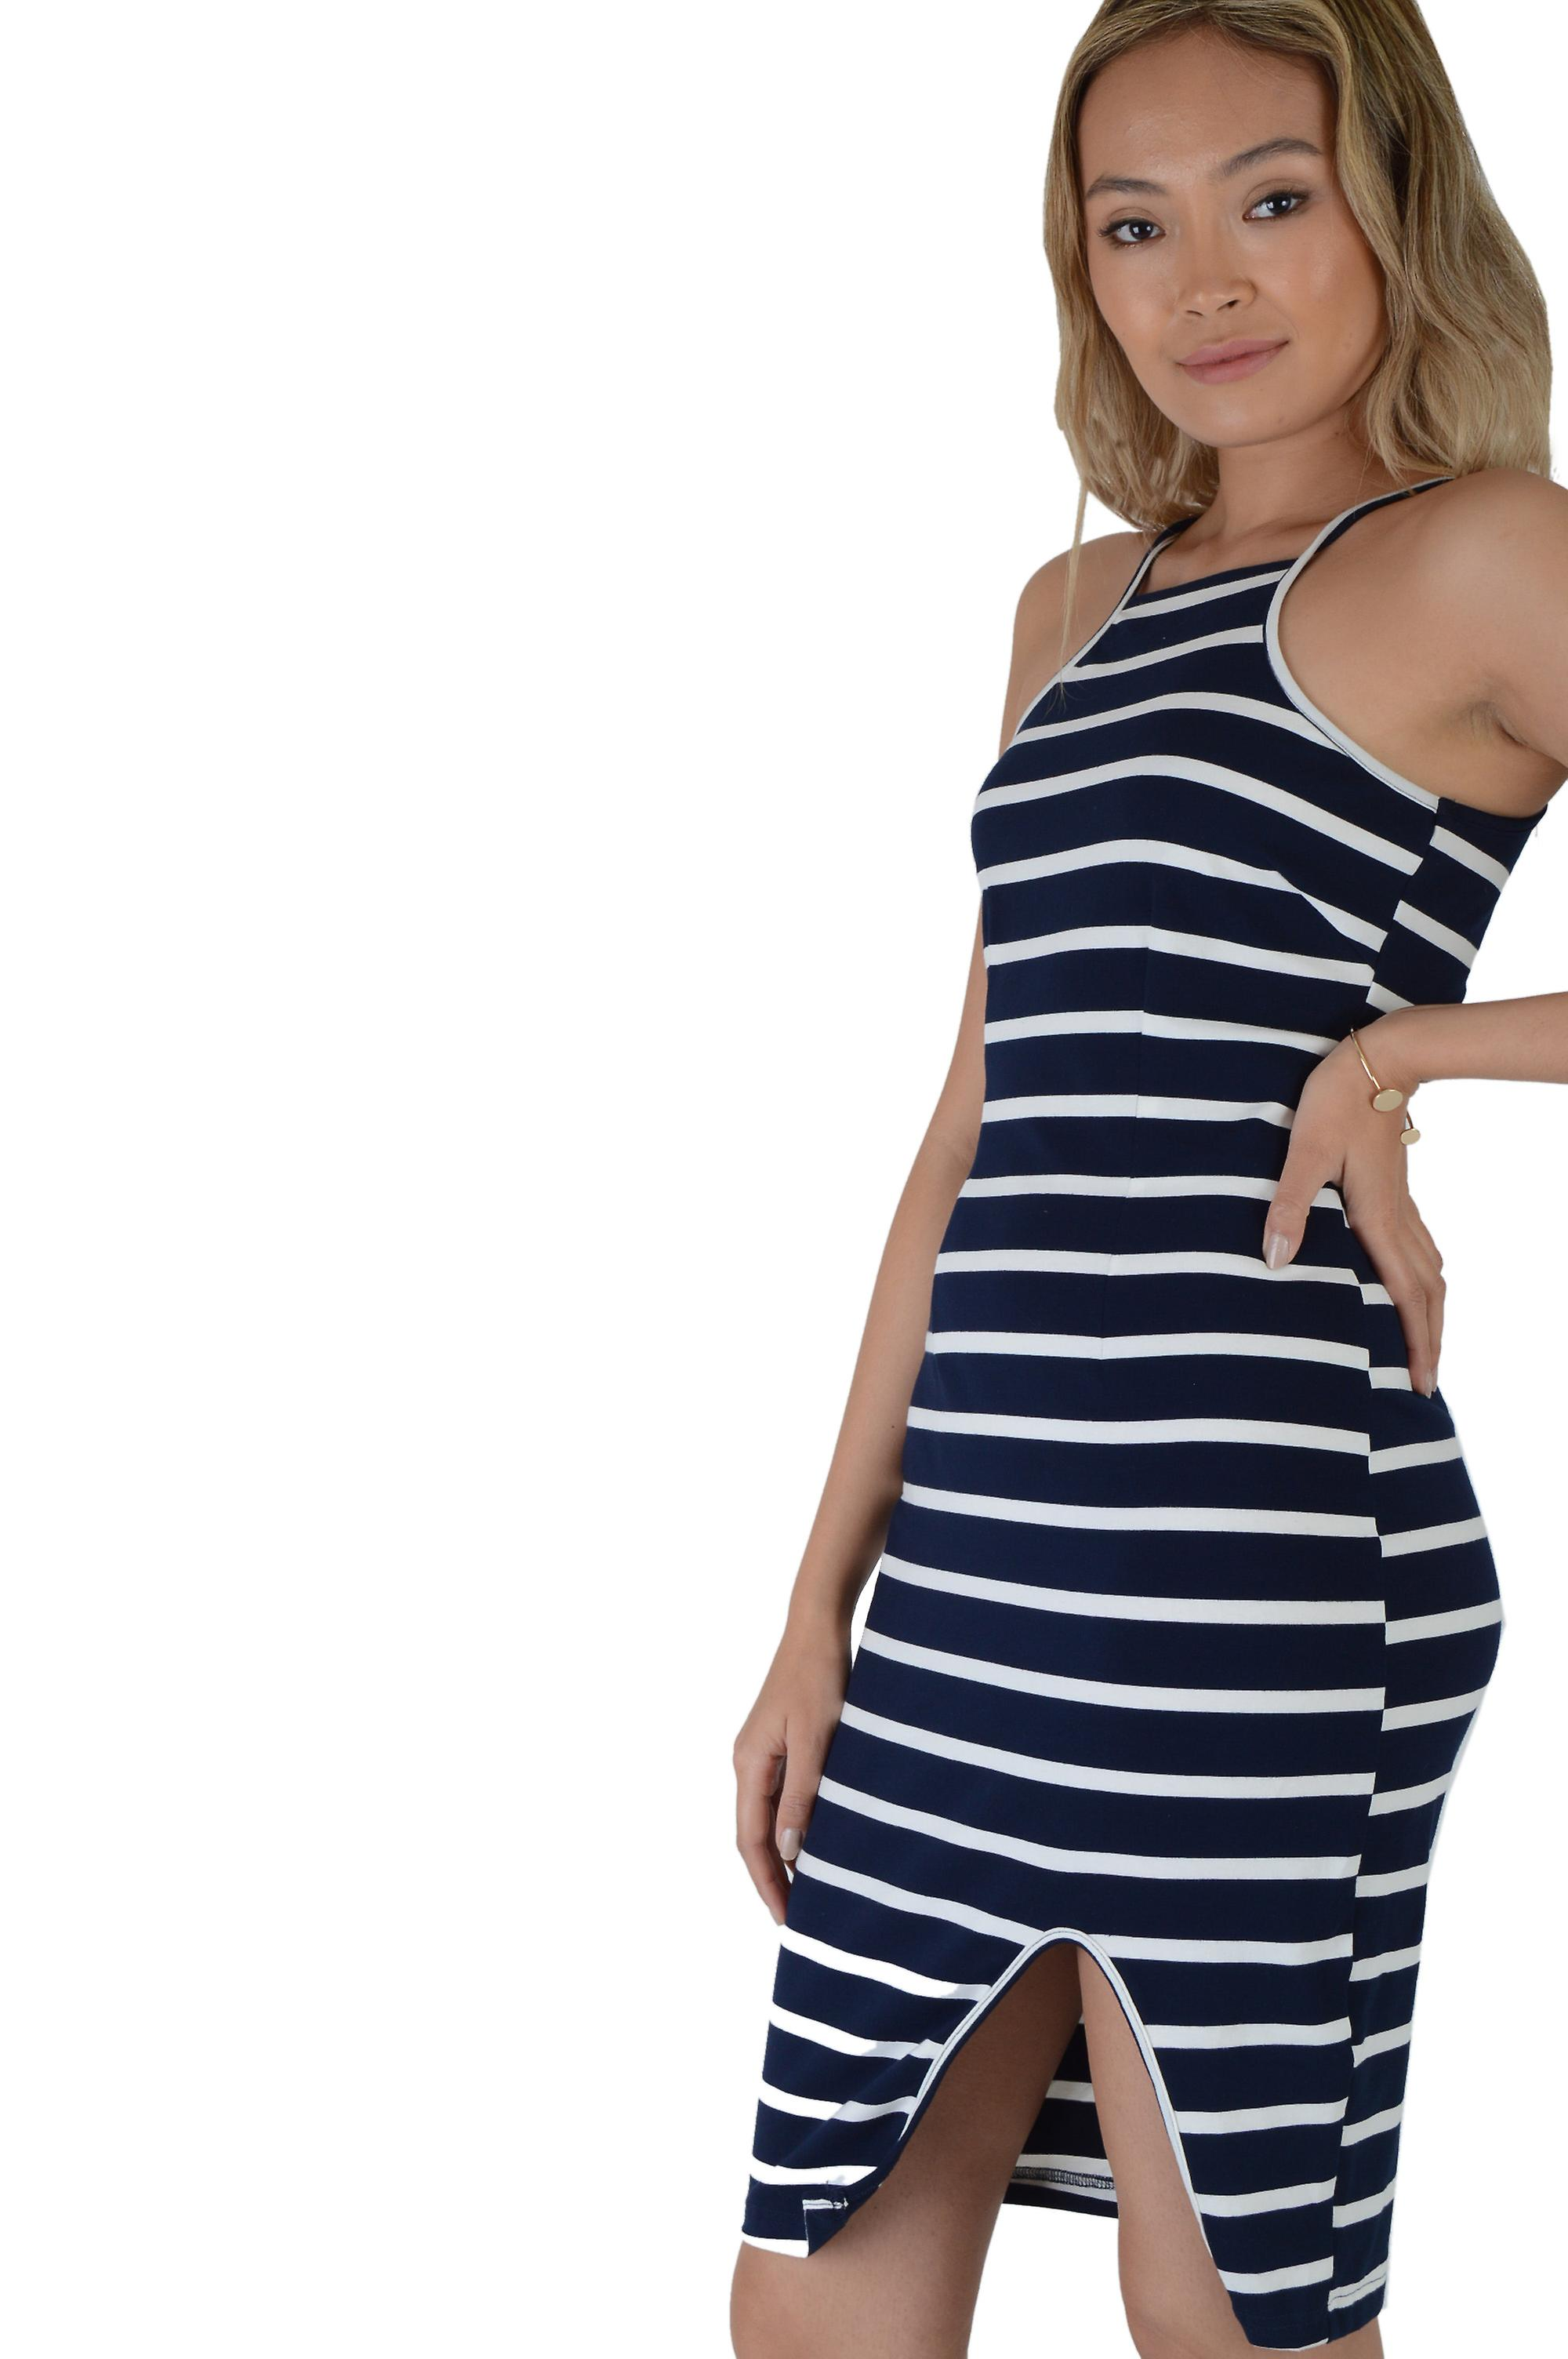 Lovemystyle Navy Blue And White Stripe Midi Dress - SAMPLE